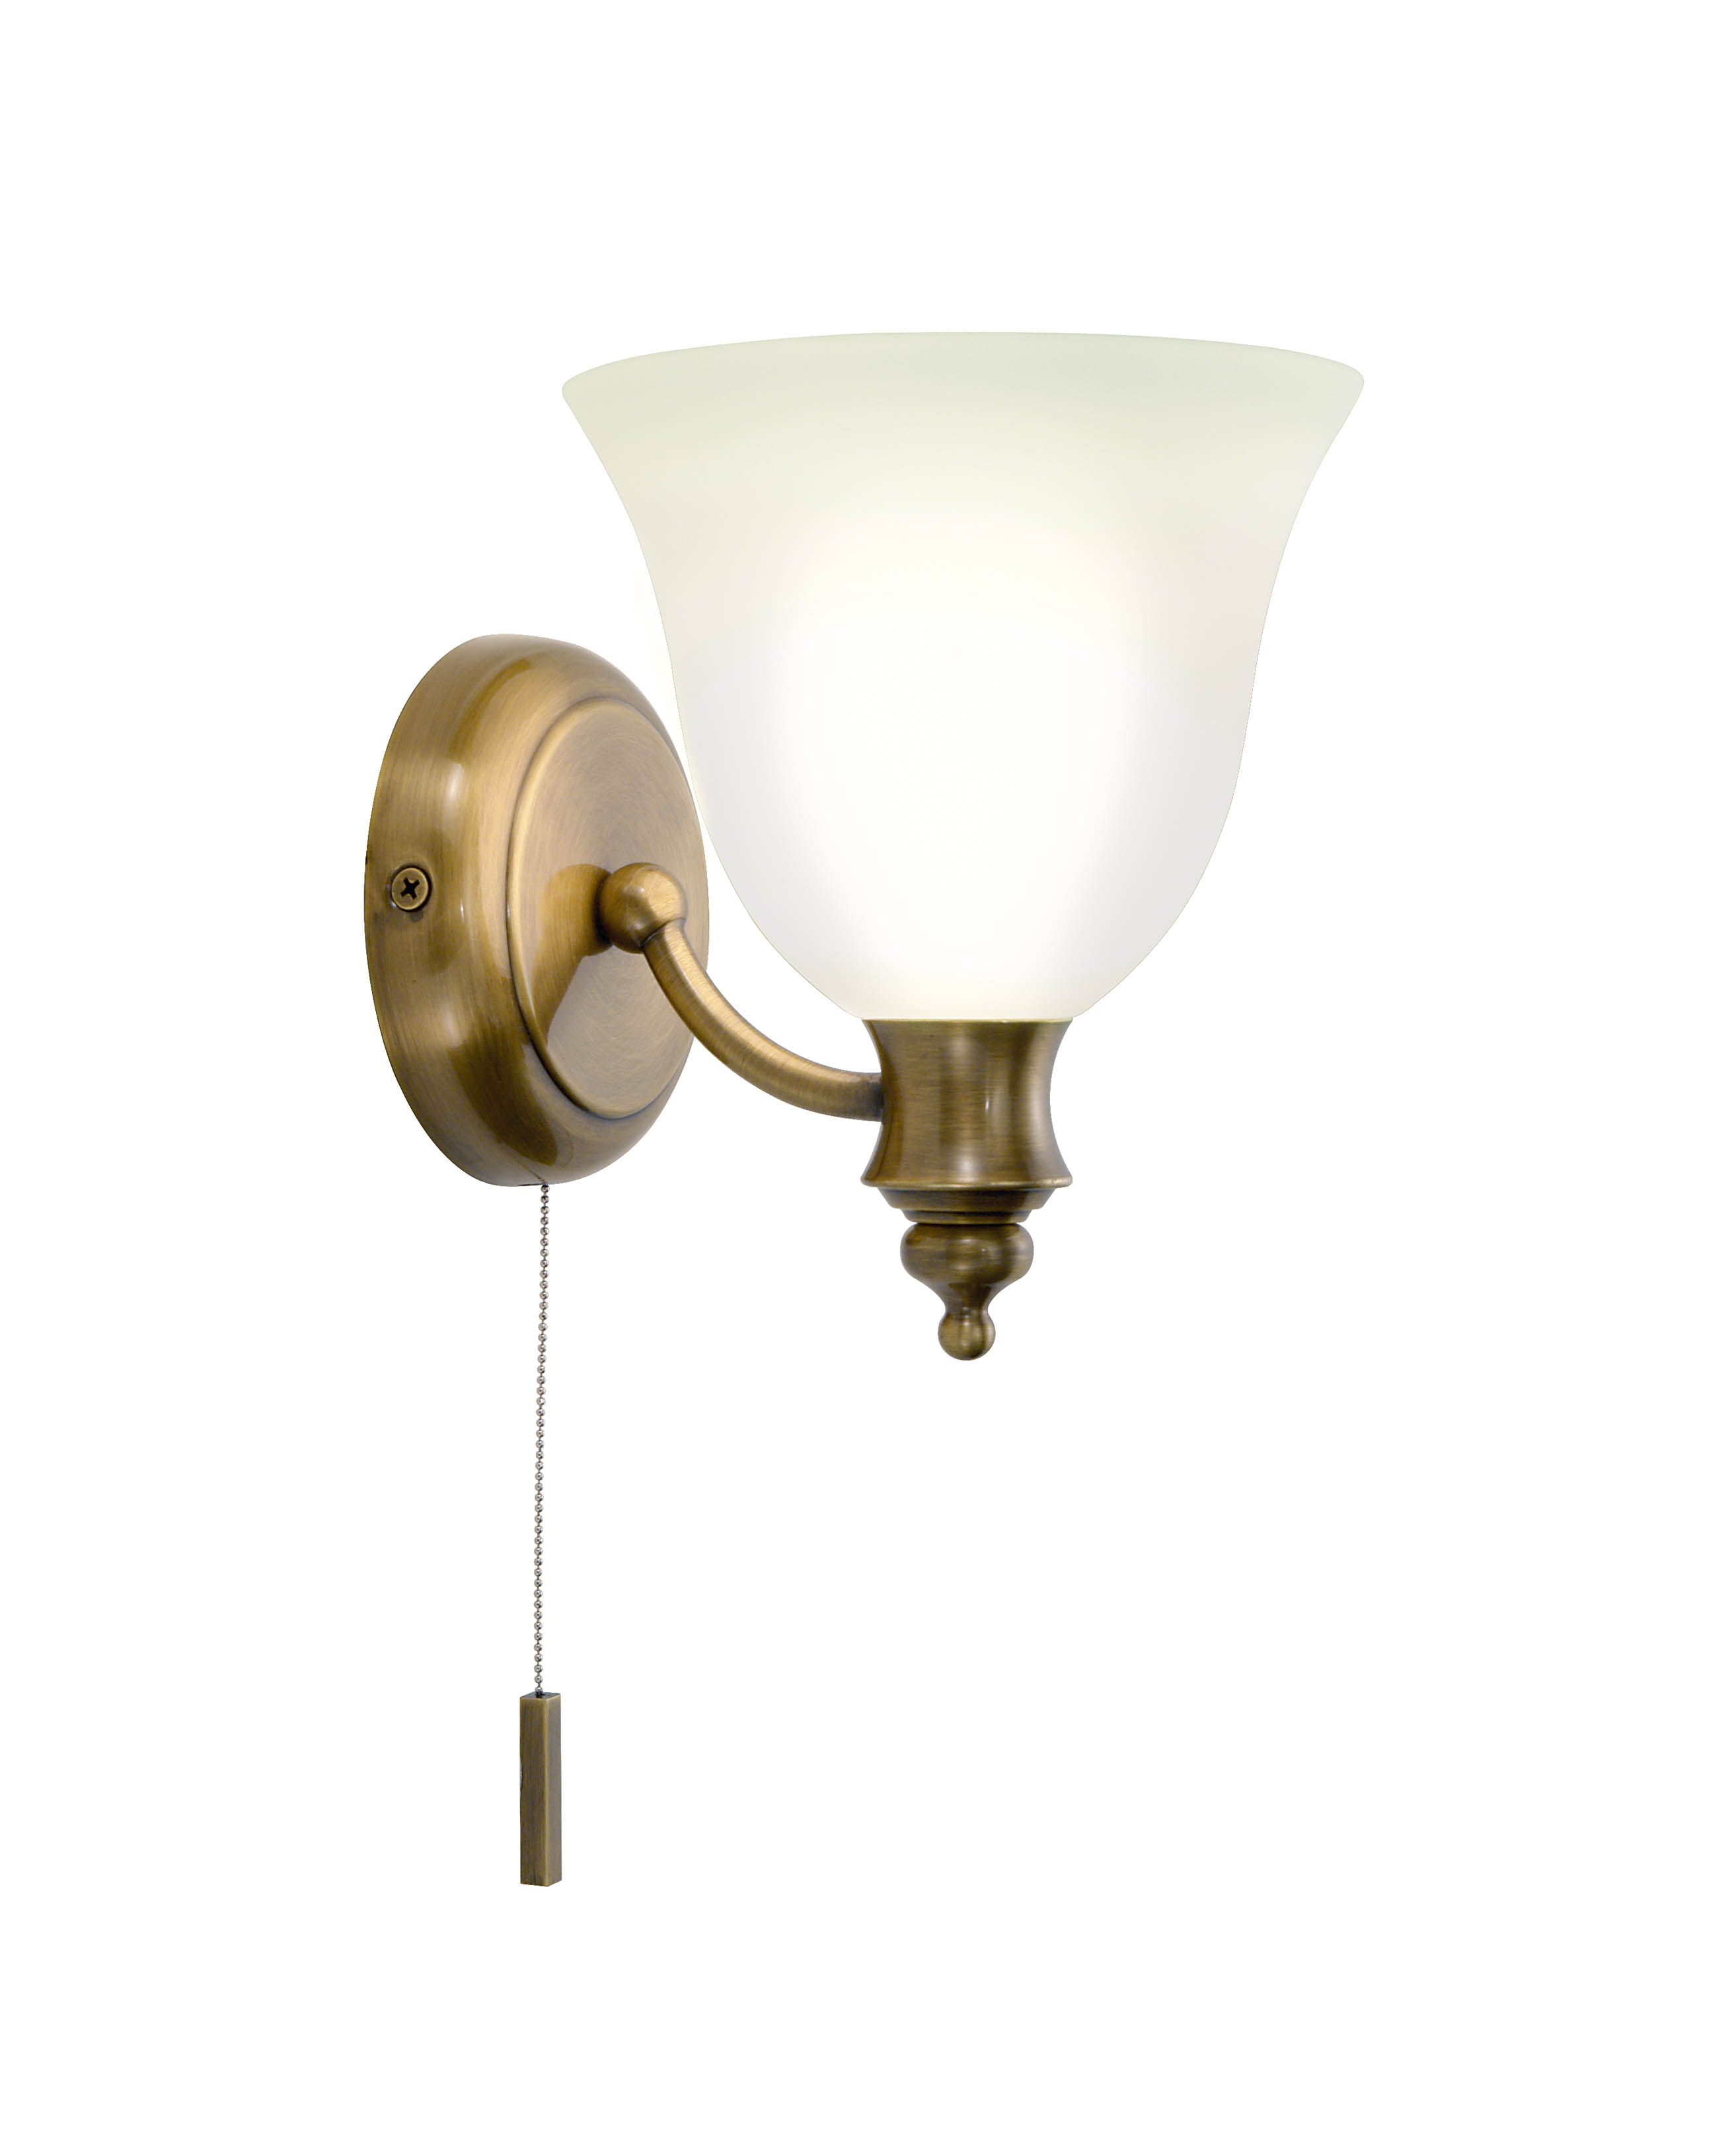 Ceiling Fan Led Light Bulbs